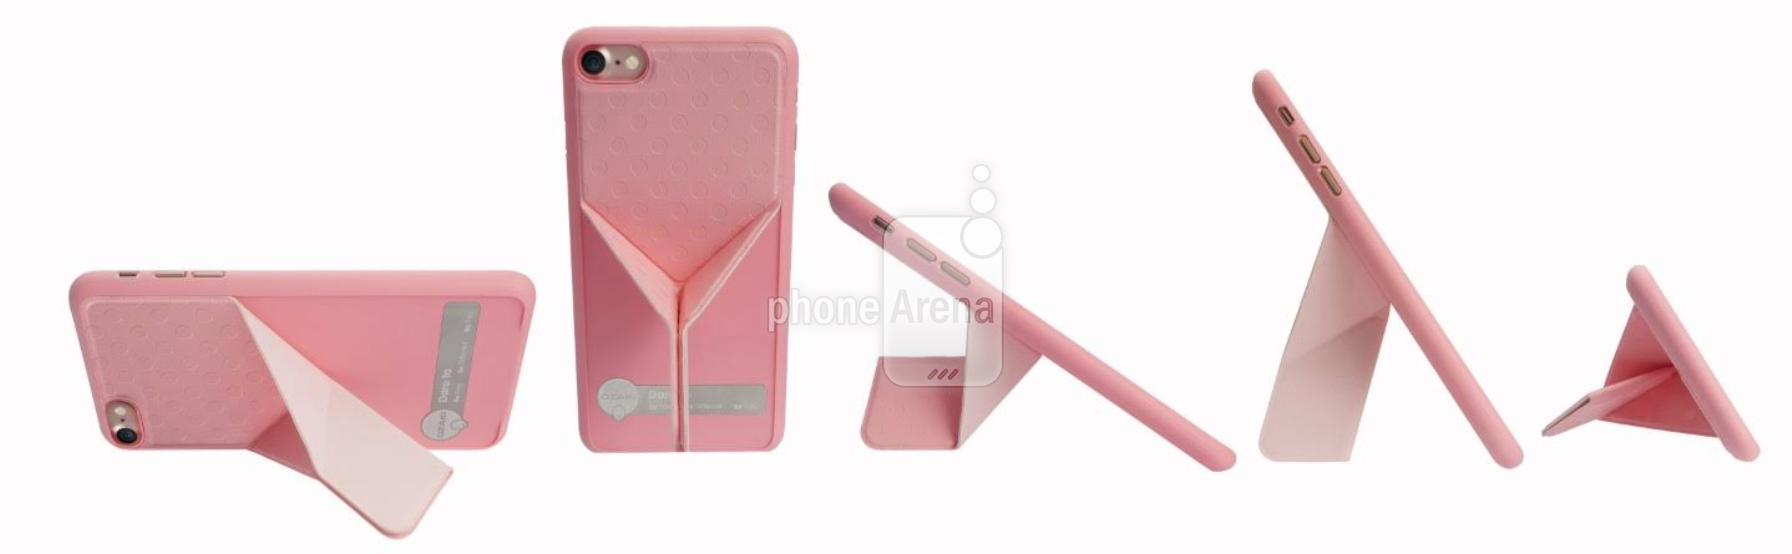 iphone-7-third-party-case-3d-model_10